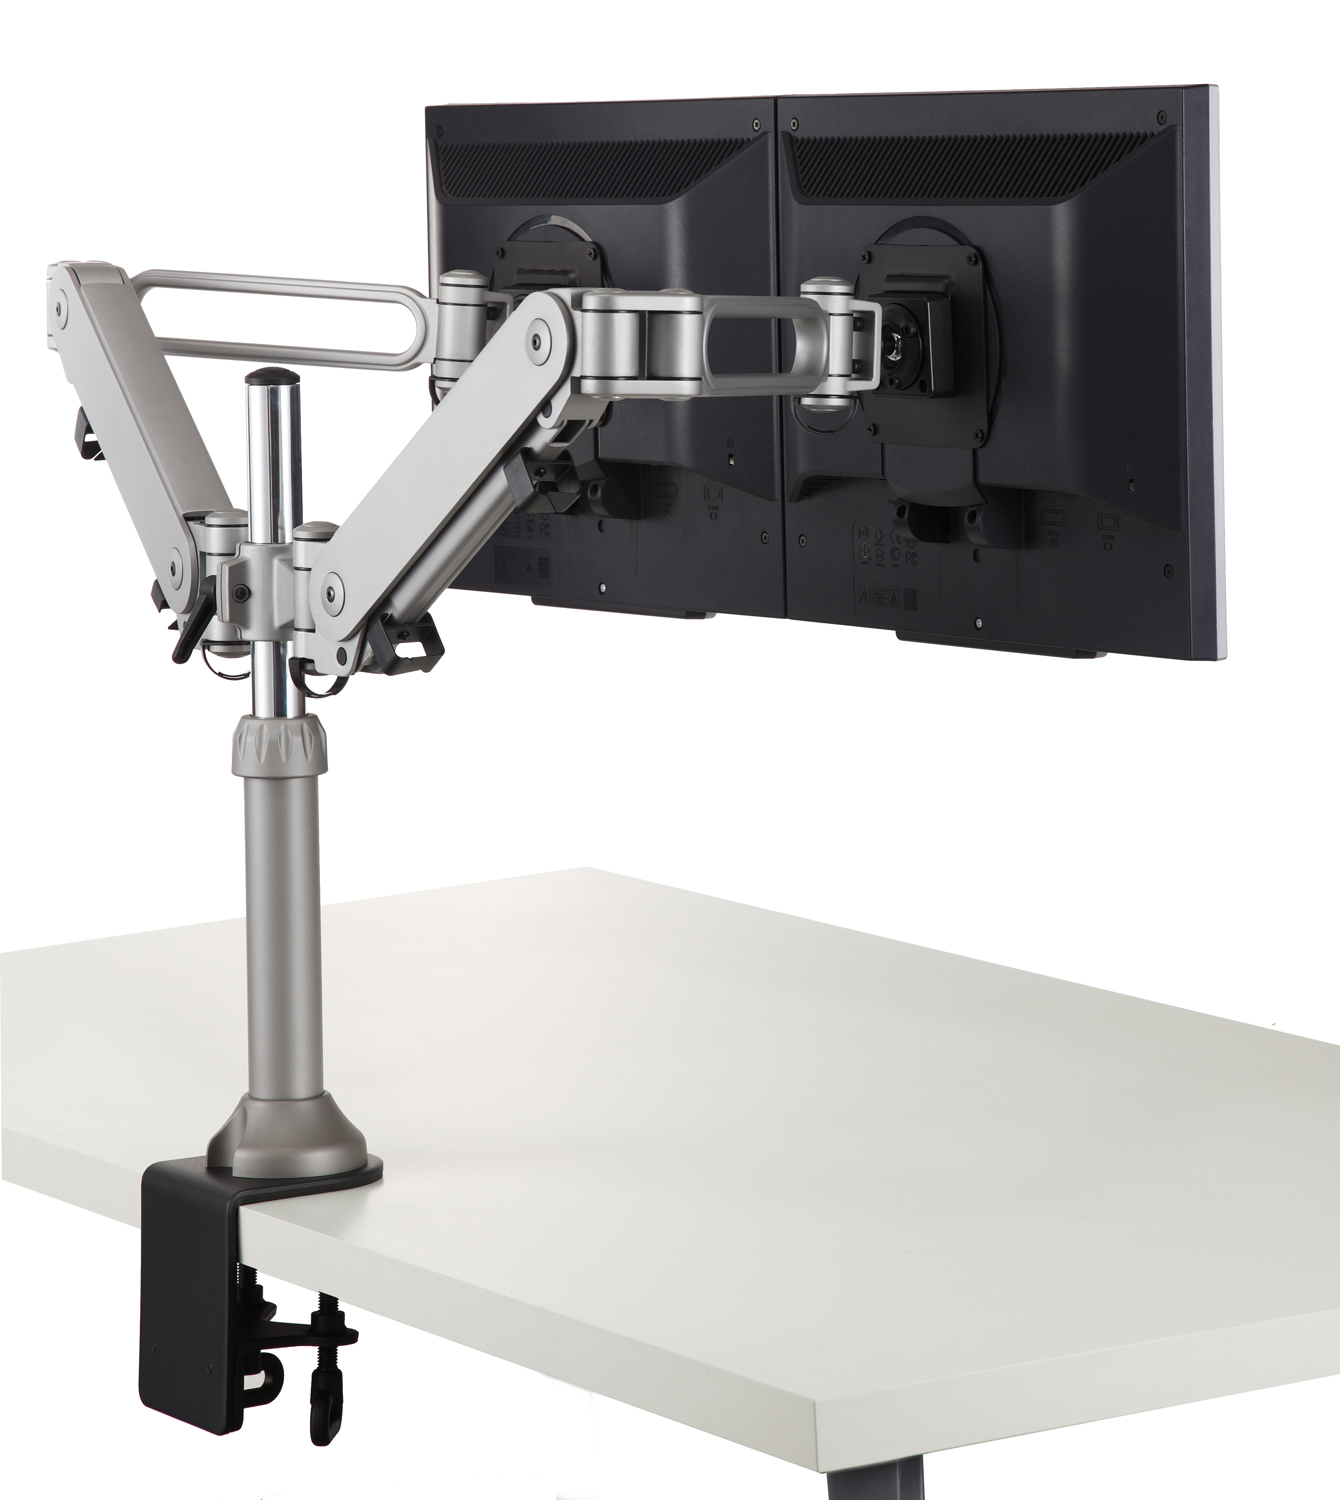 Genial Monitor Arm   RM4 Desk / Top Mount (Clamp Style) Dual Monitor Holder